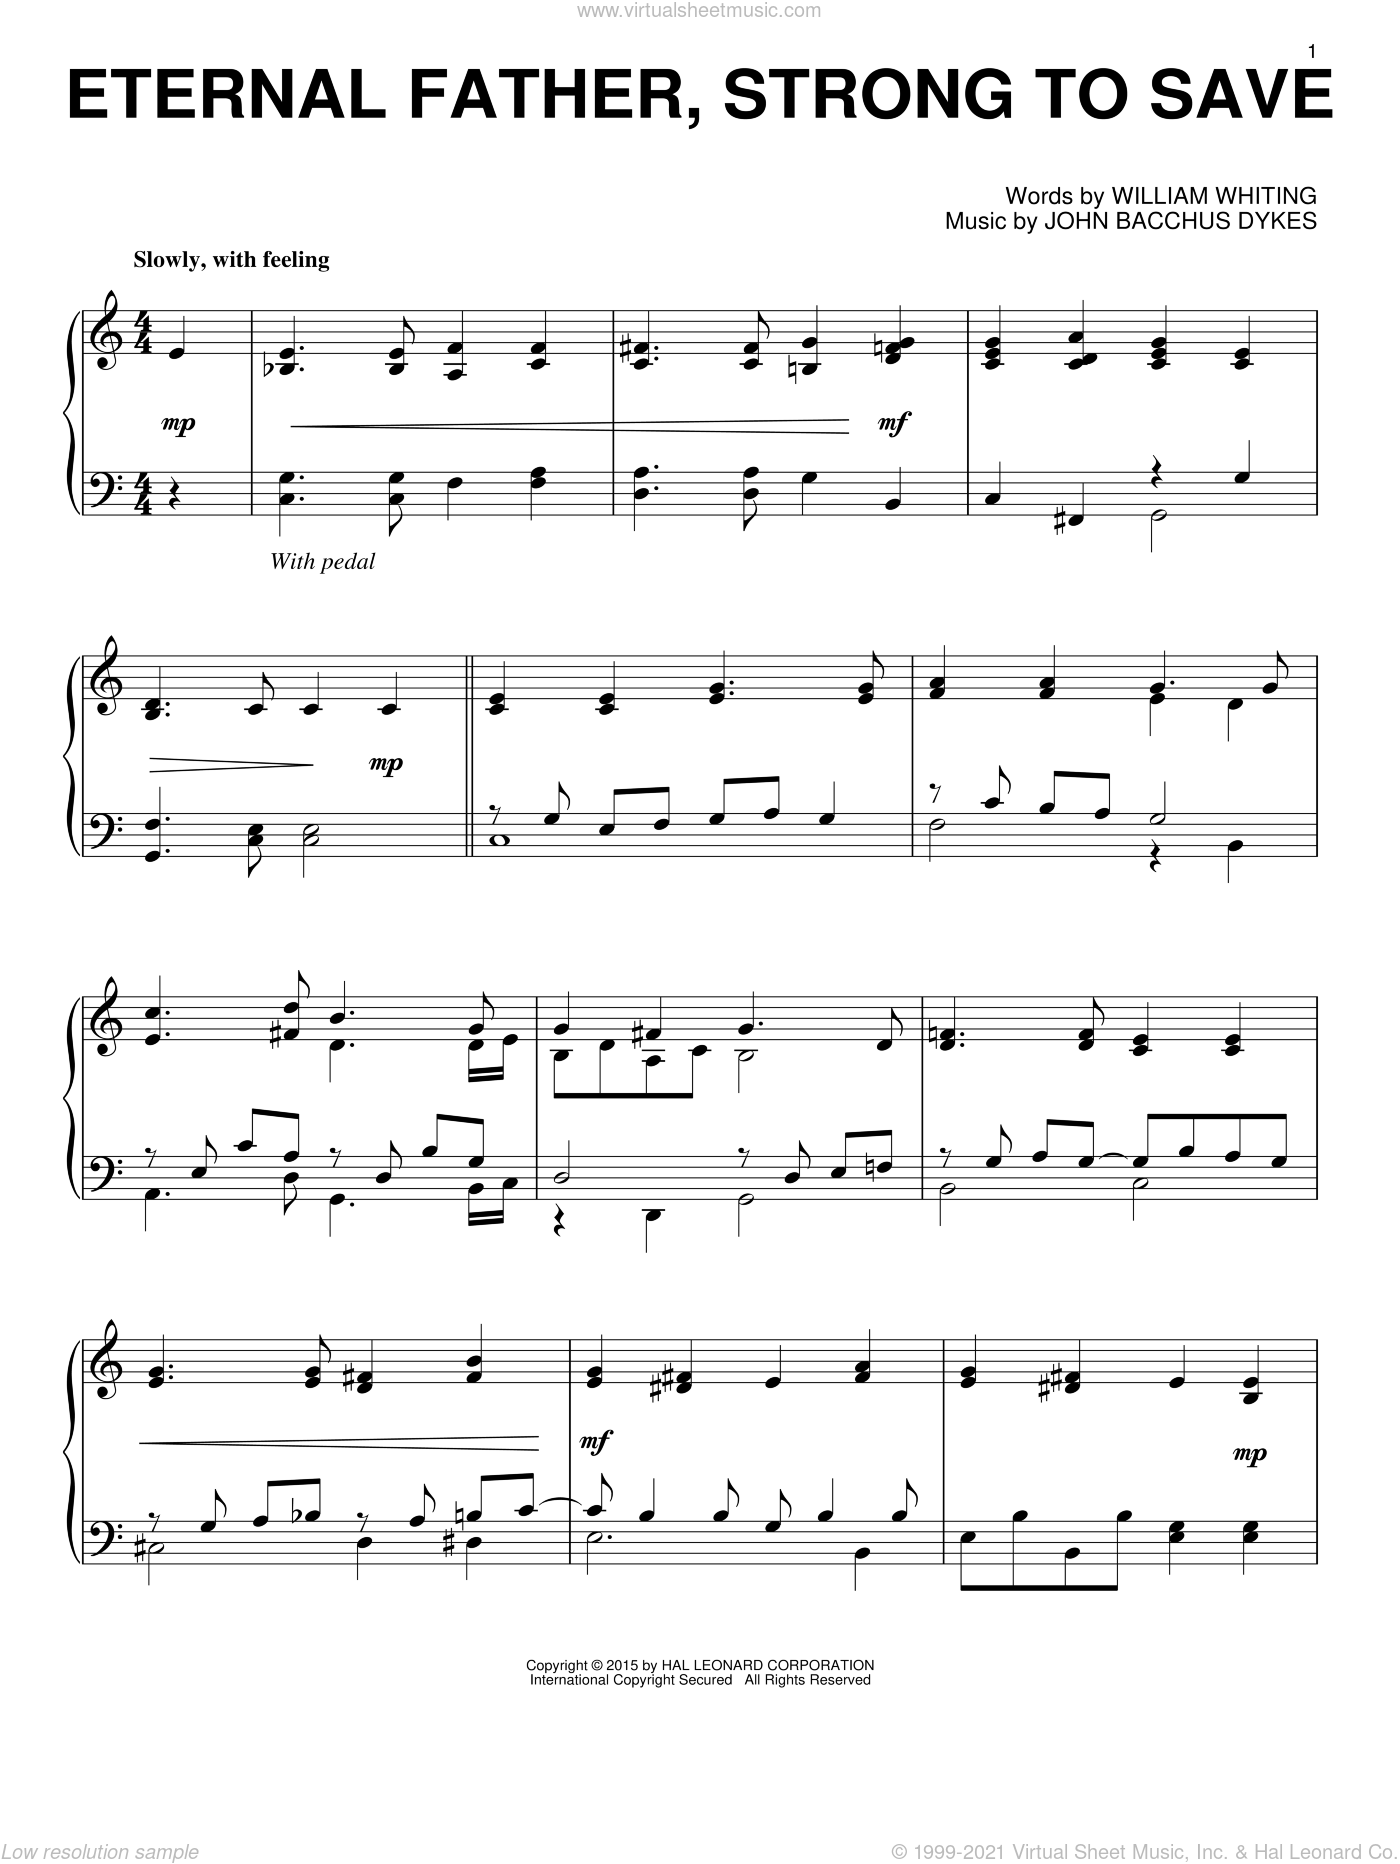 Eternal Father, Strong To Save sheet music for piano solo by William Whiting and John Bacchus Dykes. Score Image Preview.